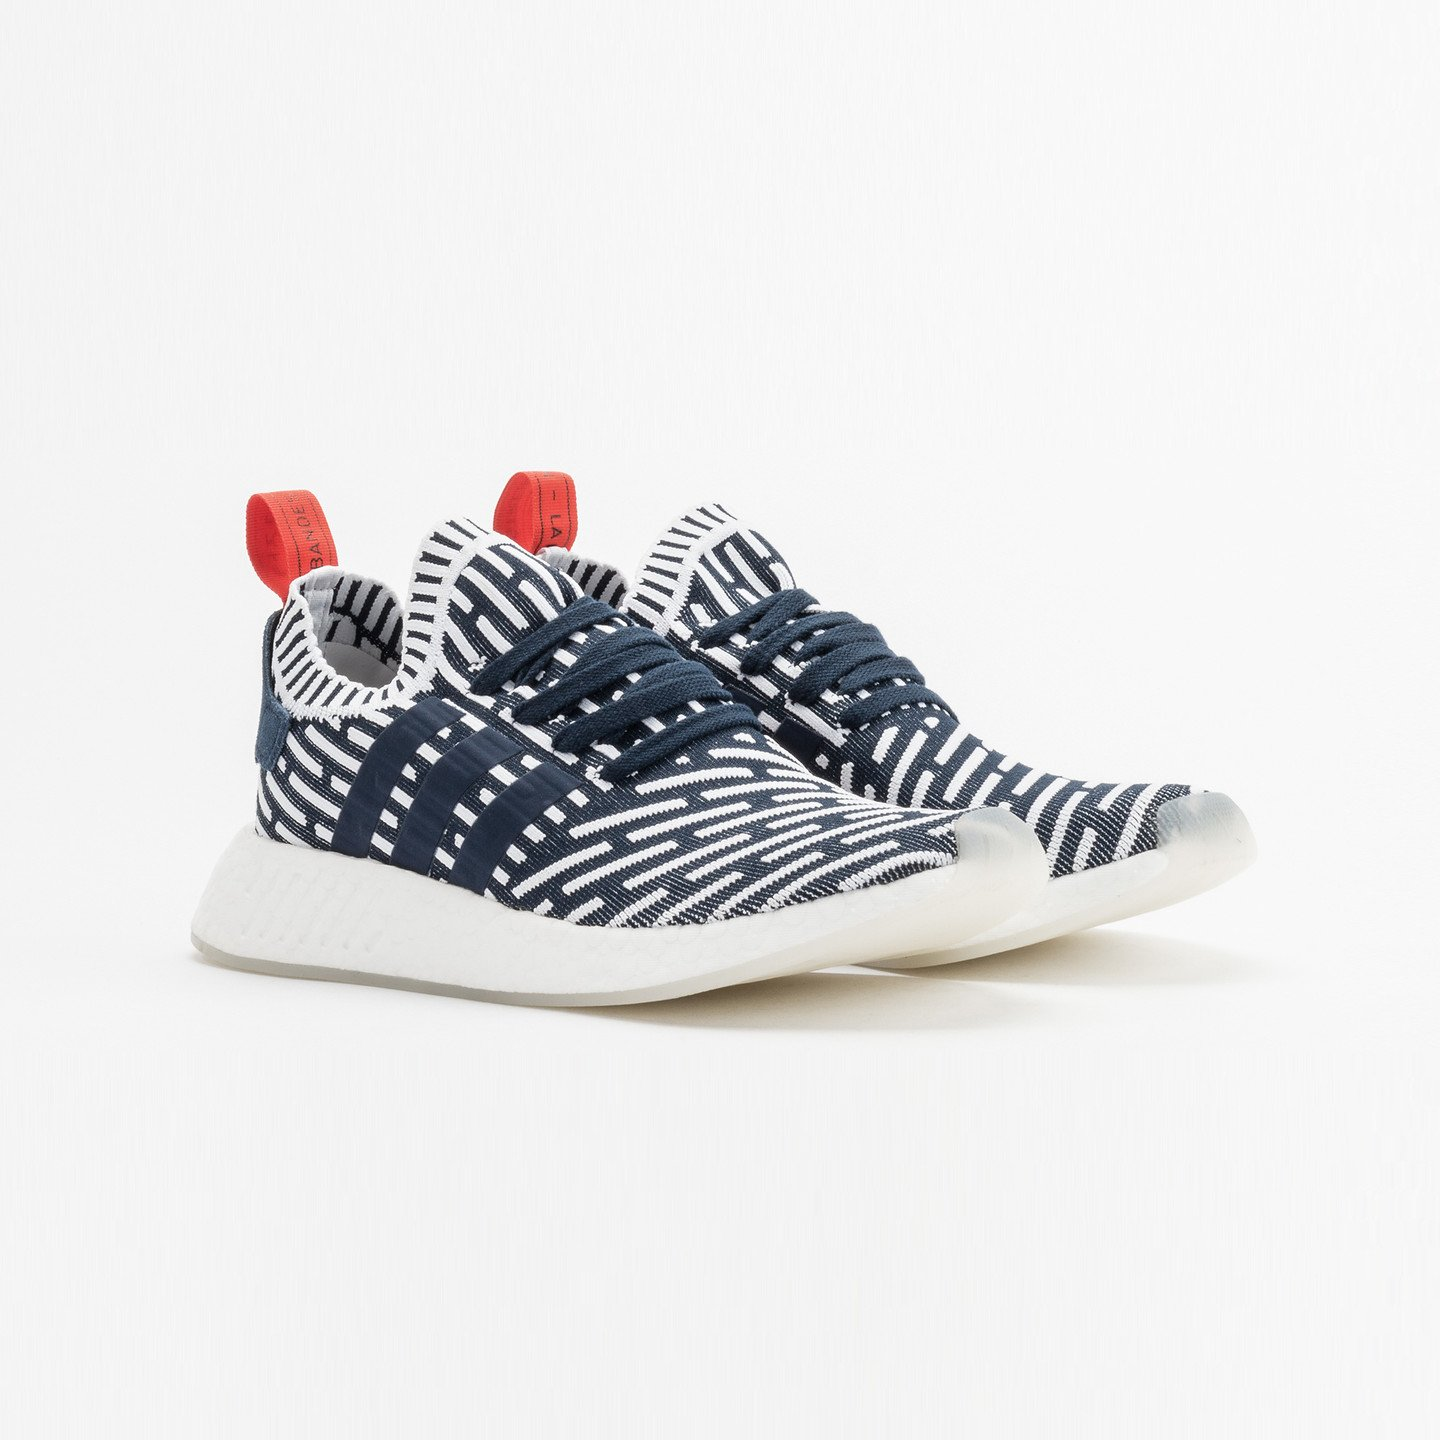 Adidas NMD R2 PK Collegiate Navy / White BB2909-46